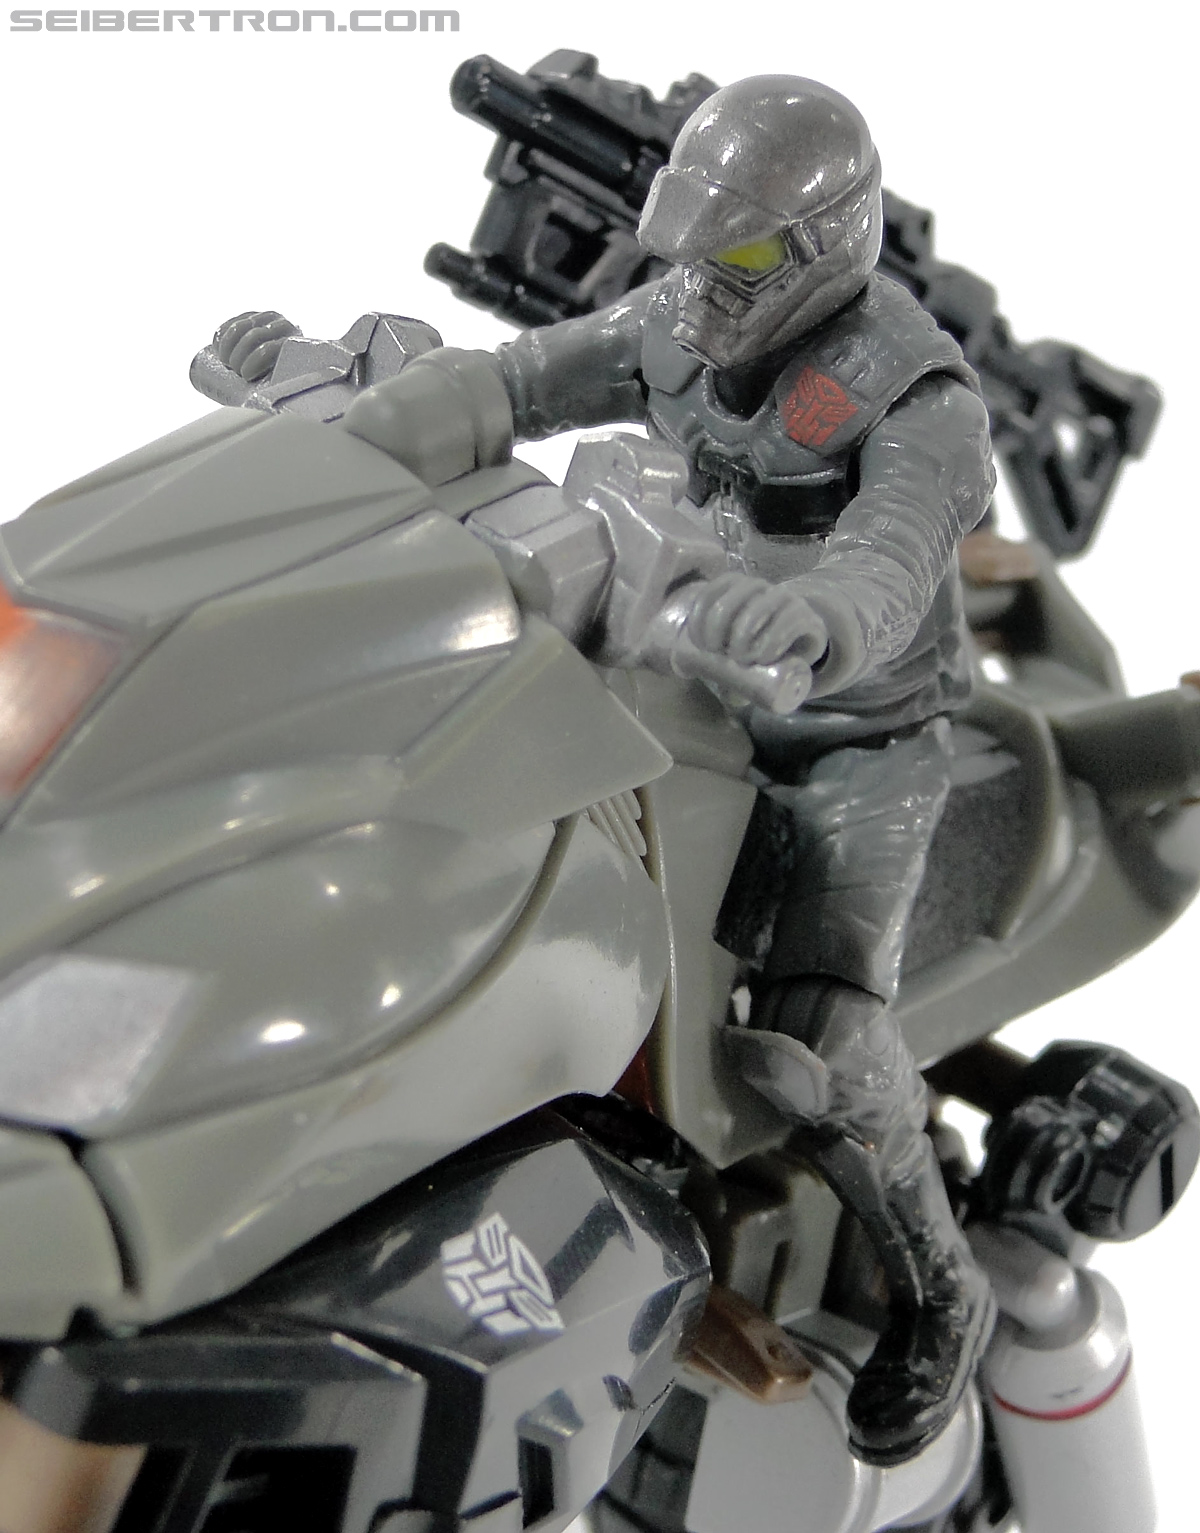 Transformers Dark of the Moon Spike Witwicky (Image #52 of 70)